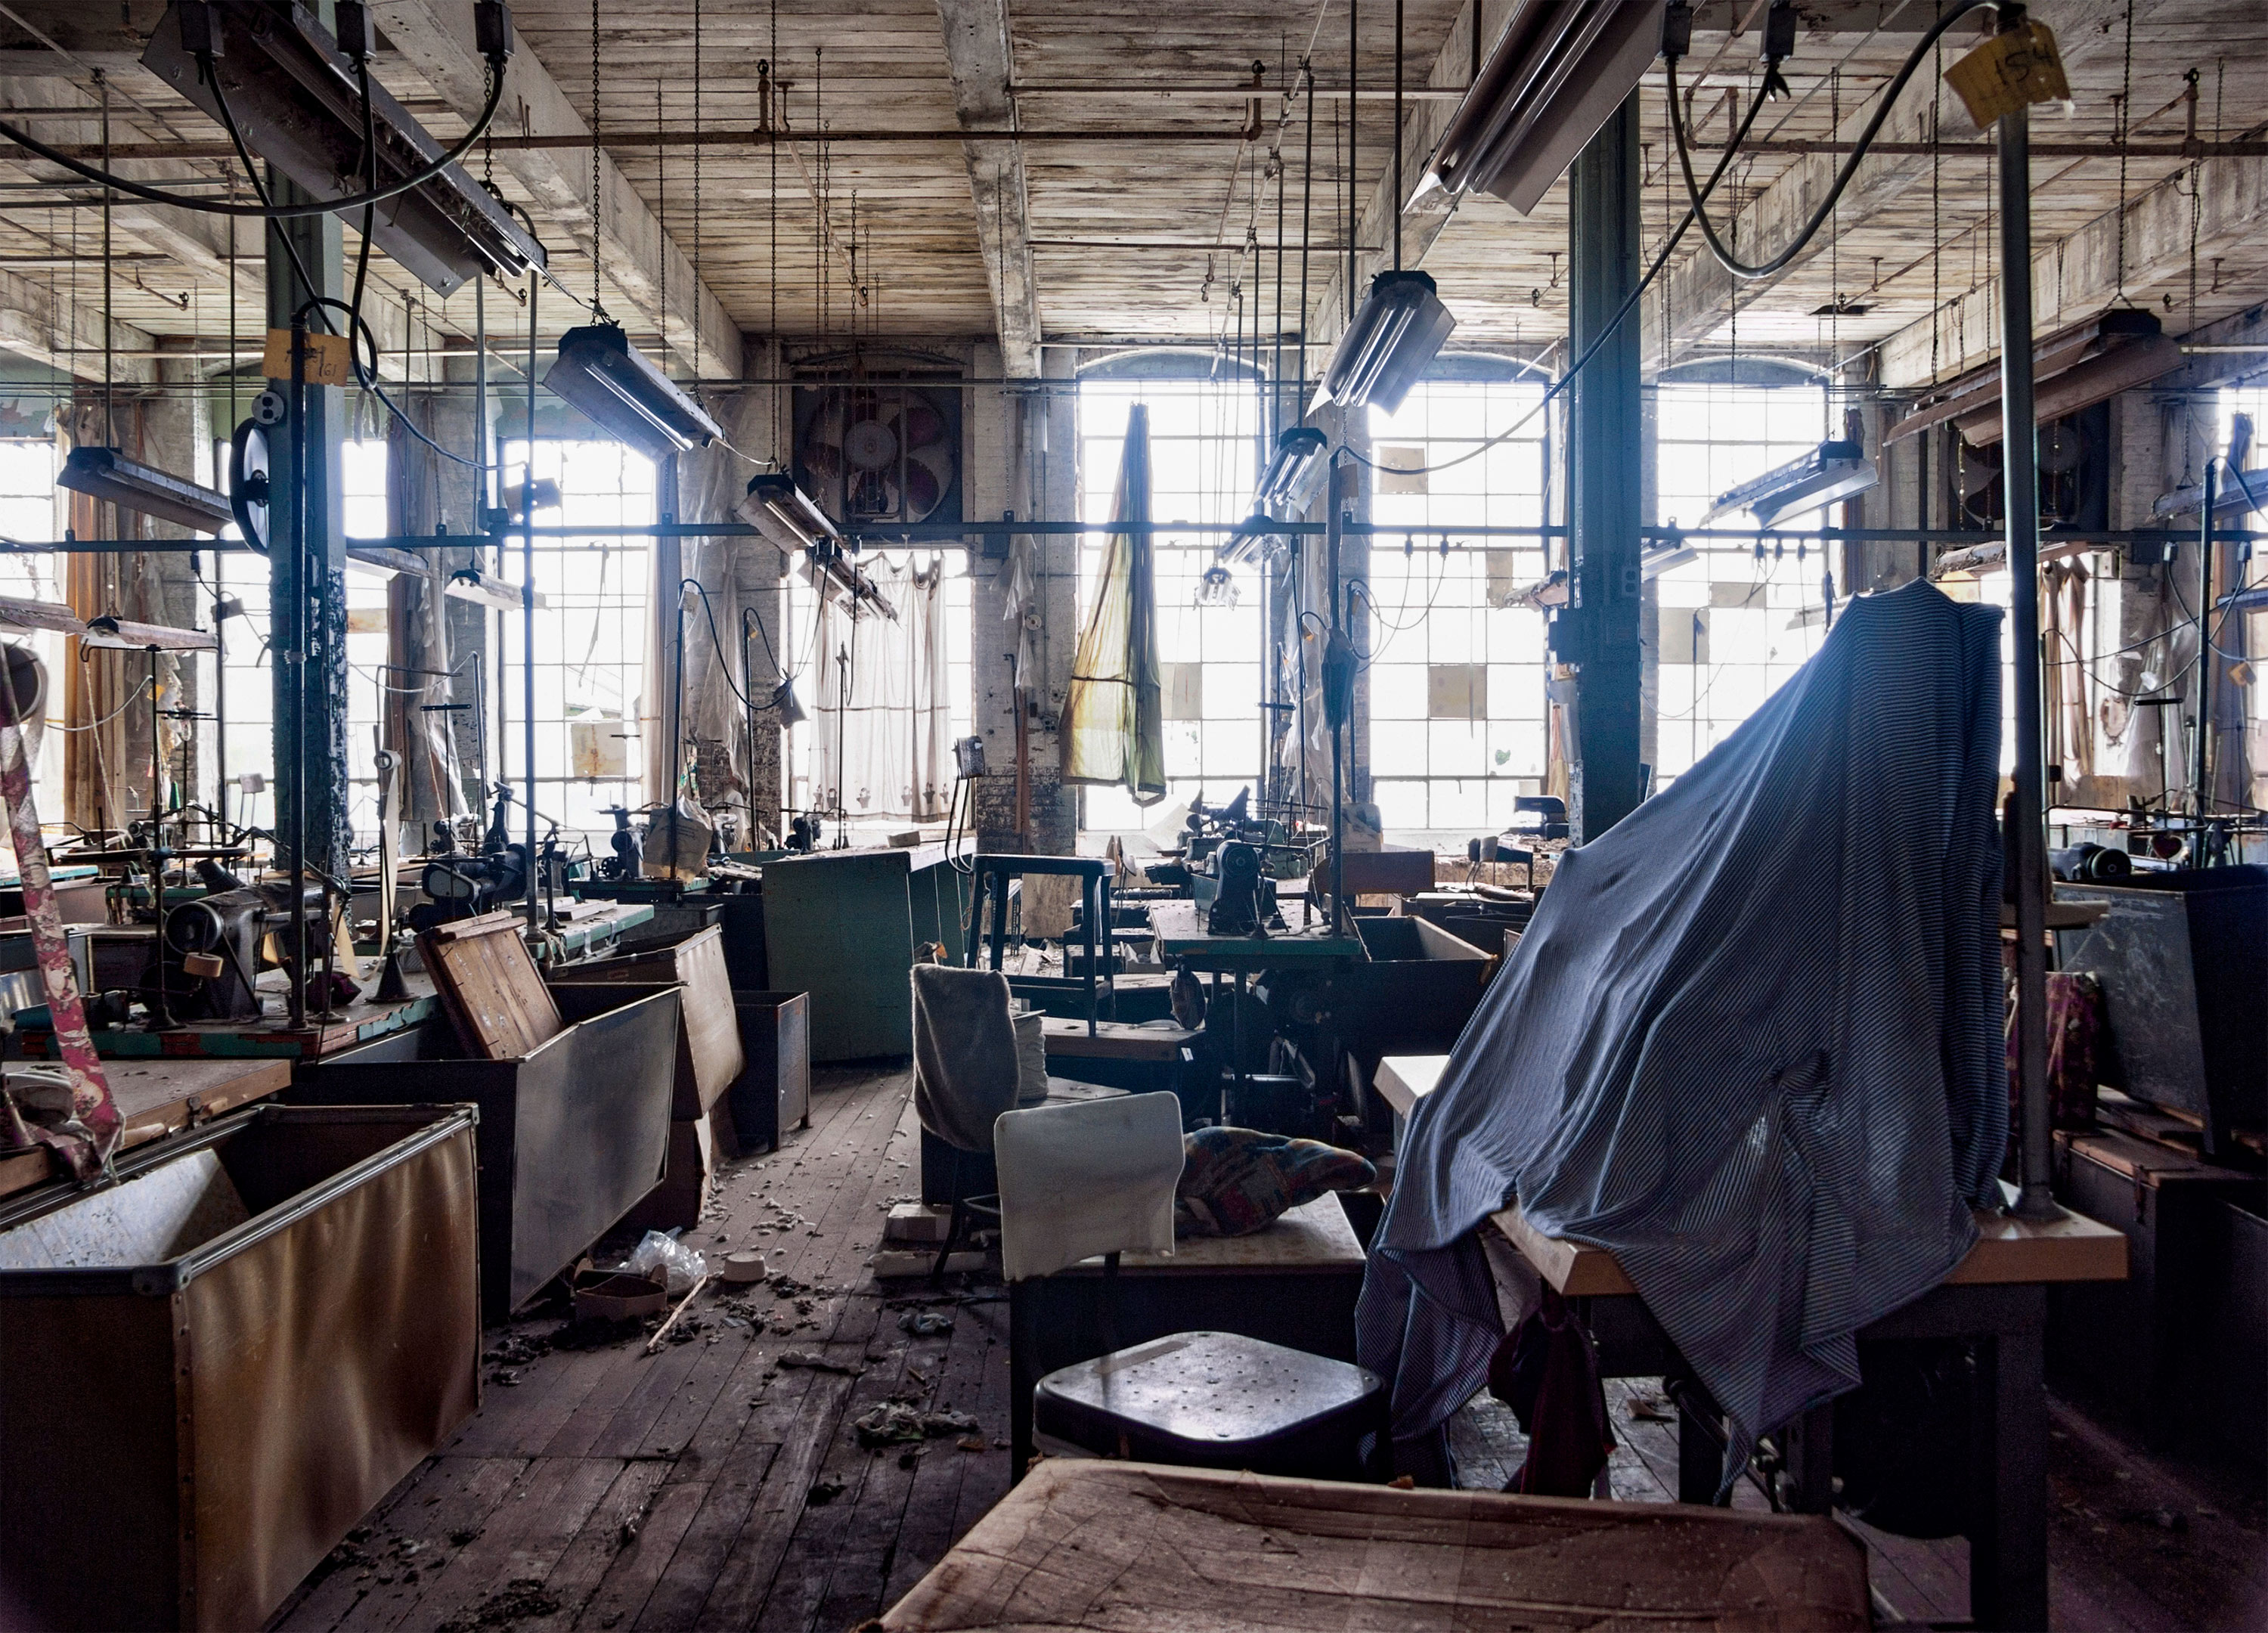 The Rosenau Brothers clothing factory in Lansford, Pennsylvania, once employed 500 people. It closed for good in the 1990s.